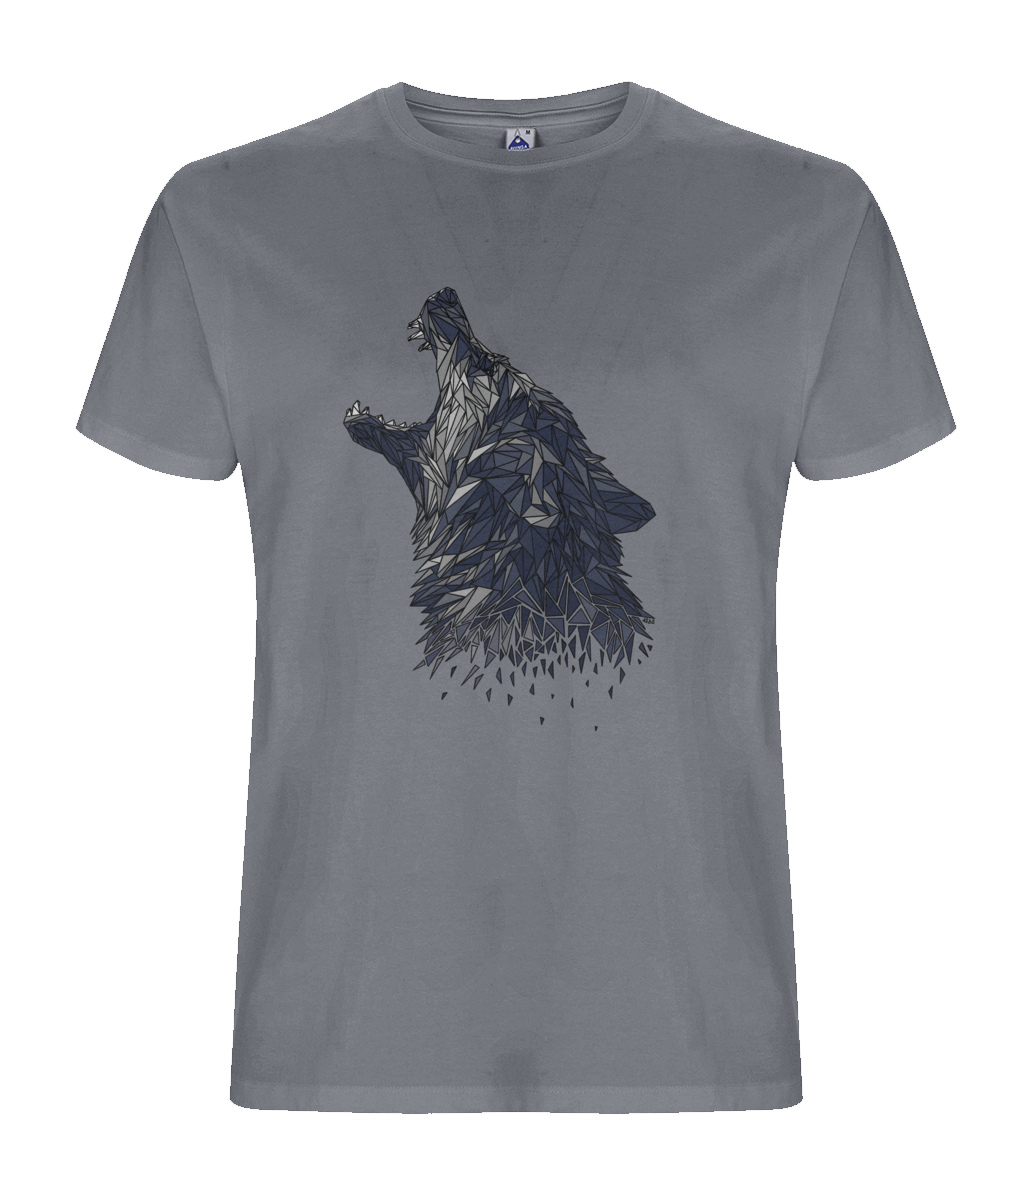 Chaos Men's Grey Tee